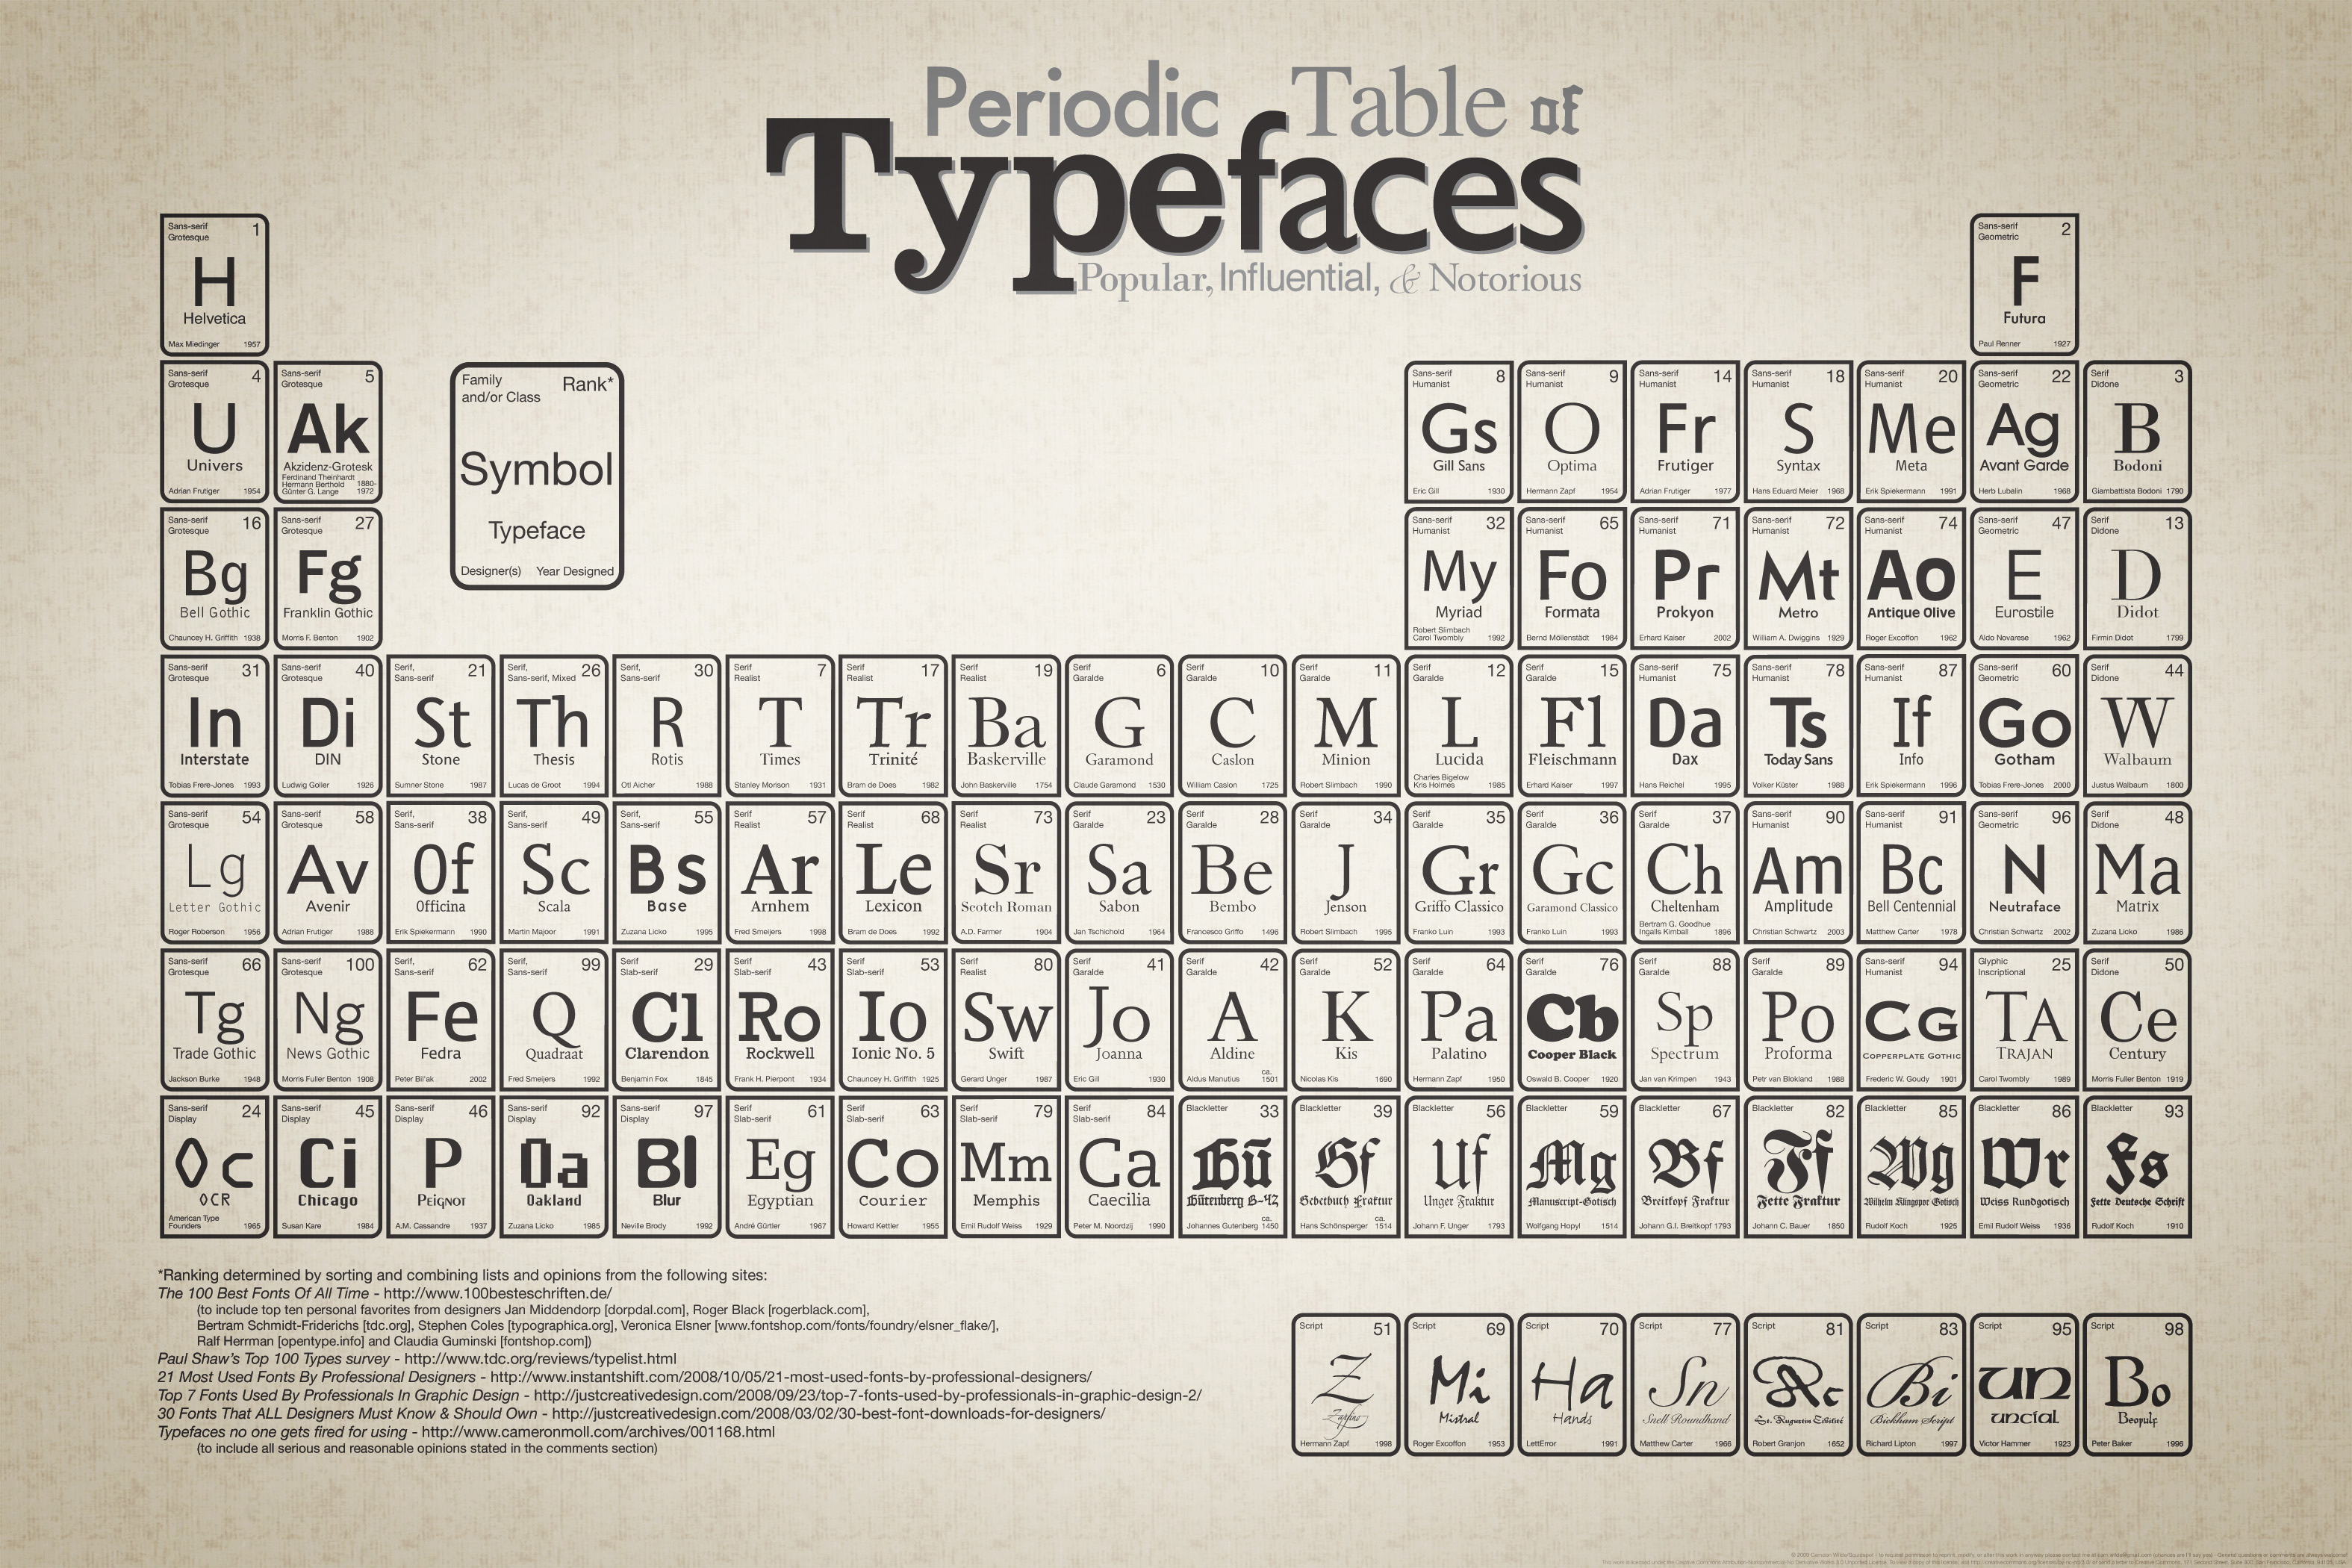 Oldest periodic table image collections periodic table images oldest periodic table choice image periodic table images oldest periodic table images periodic table images oldest gamestrikefo Images